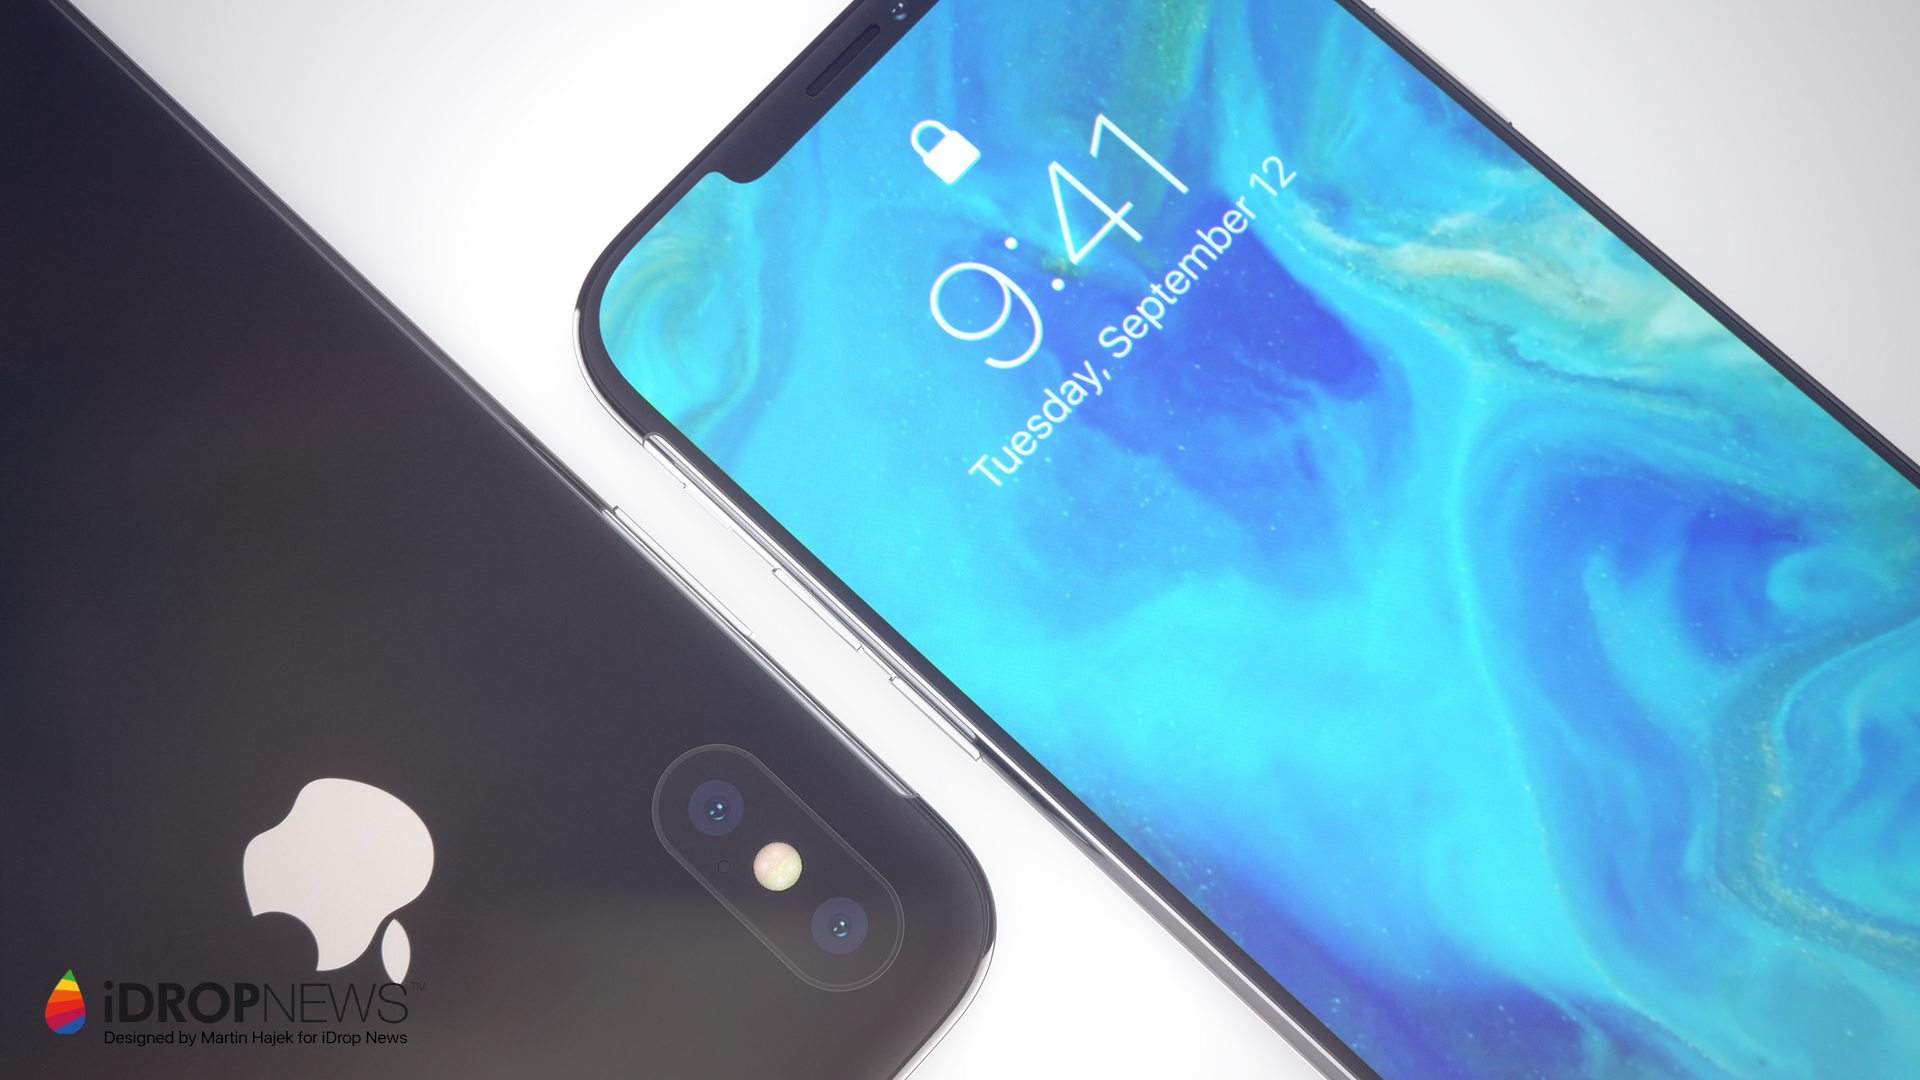 Iphone Xi Concept Images Idrop News 2